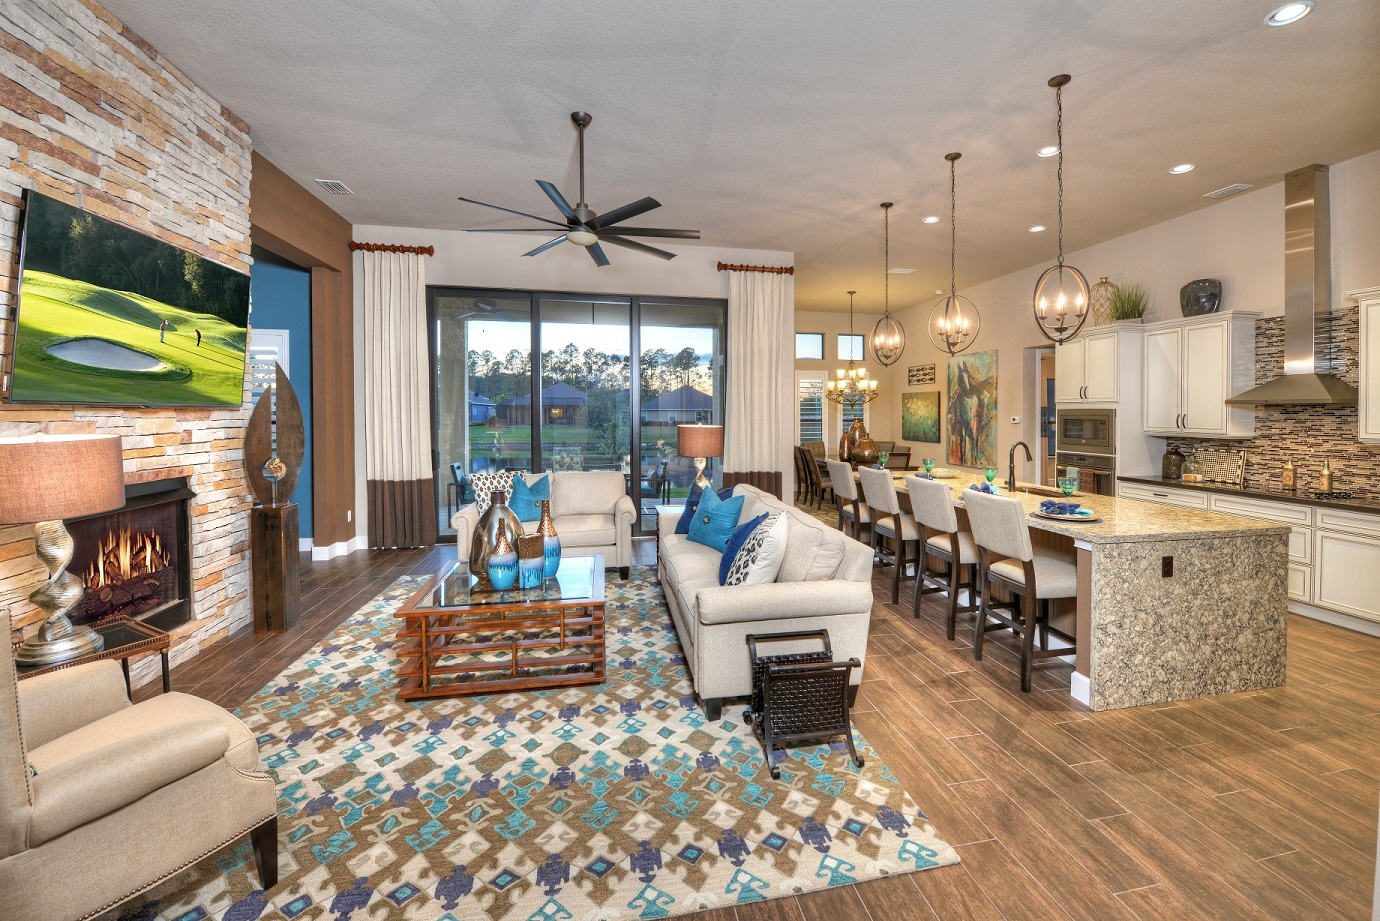 New Ici Model Homes Underway At Amelia National Gold